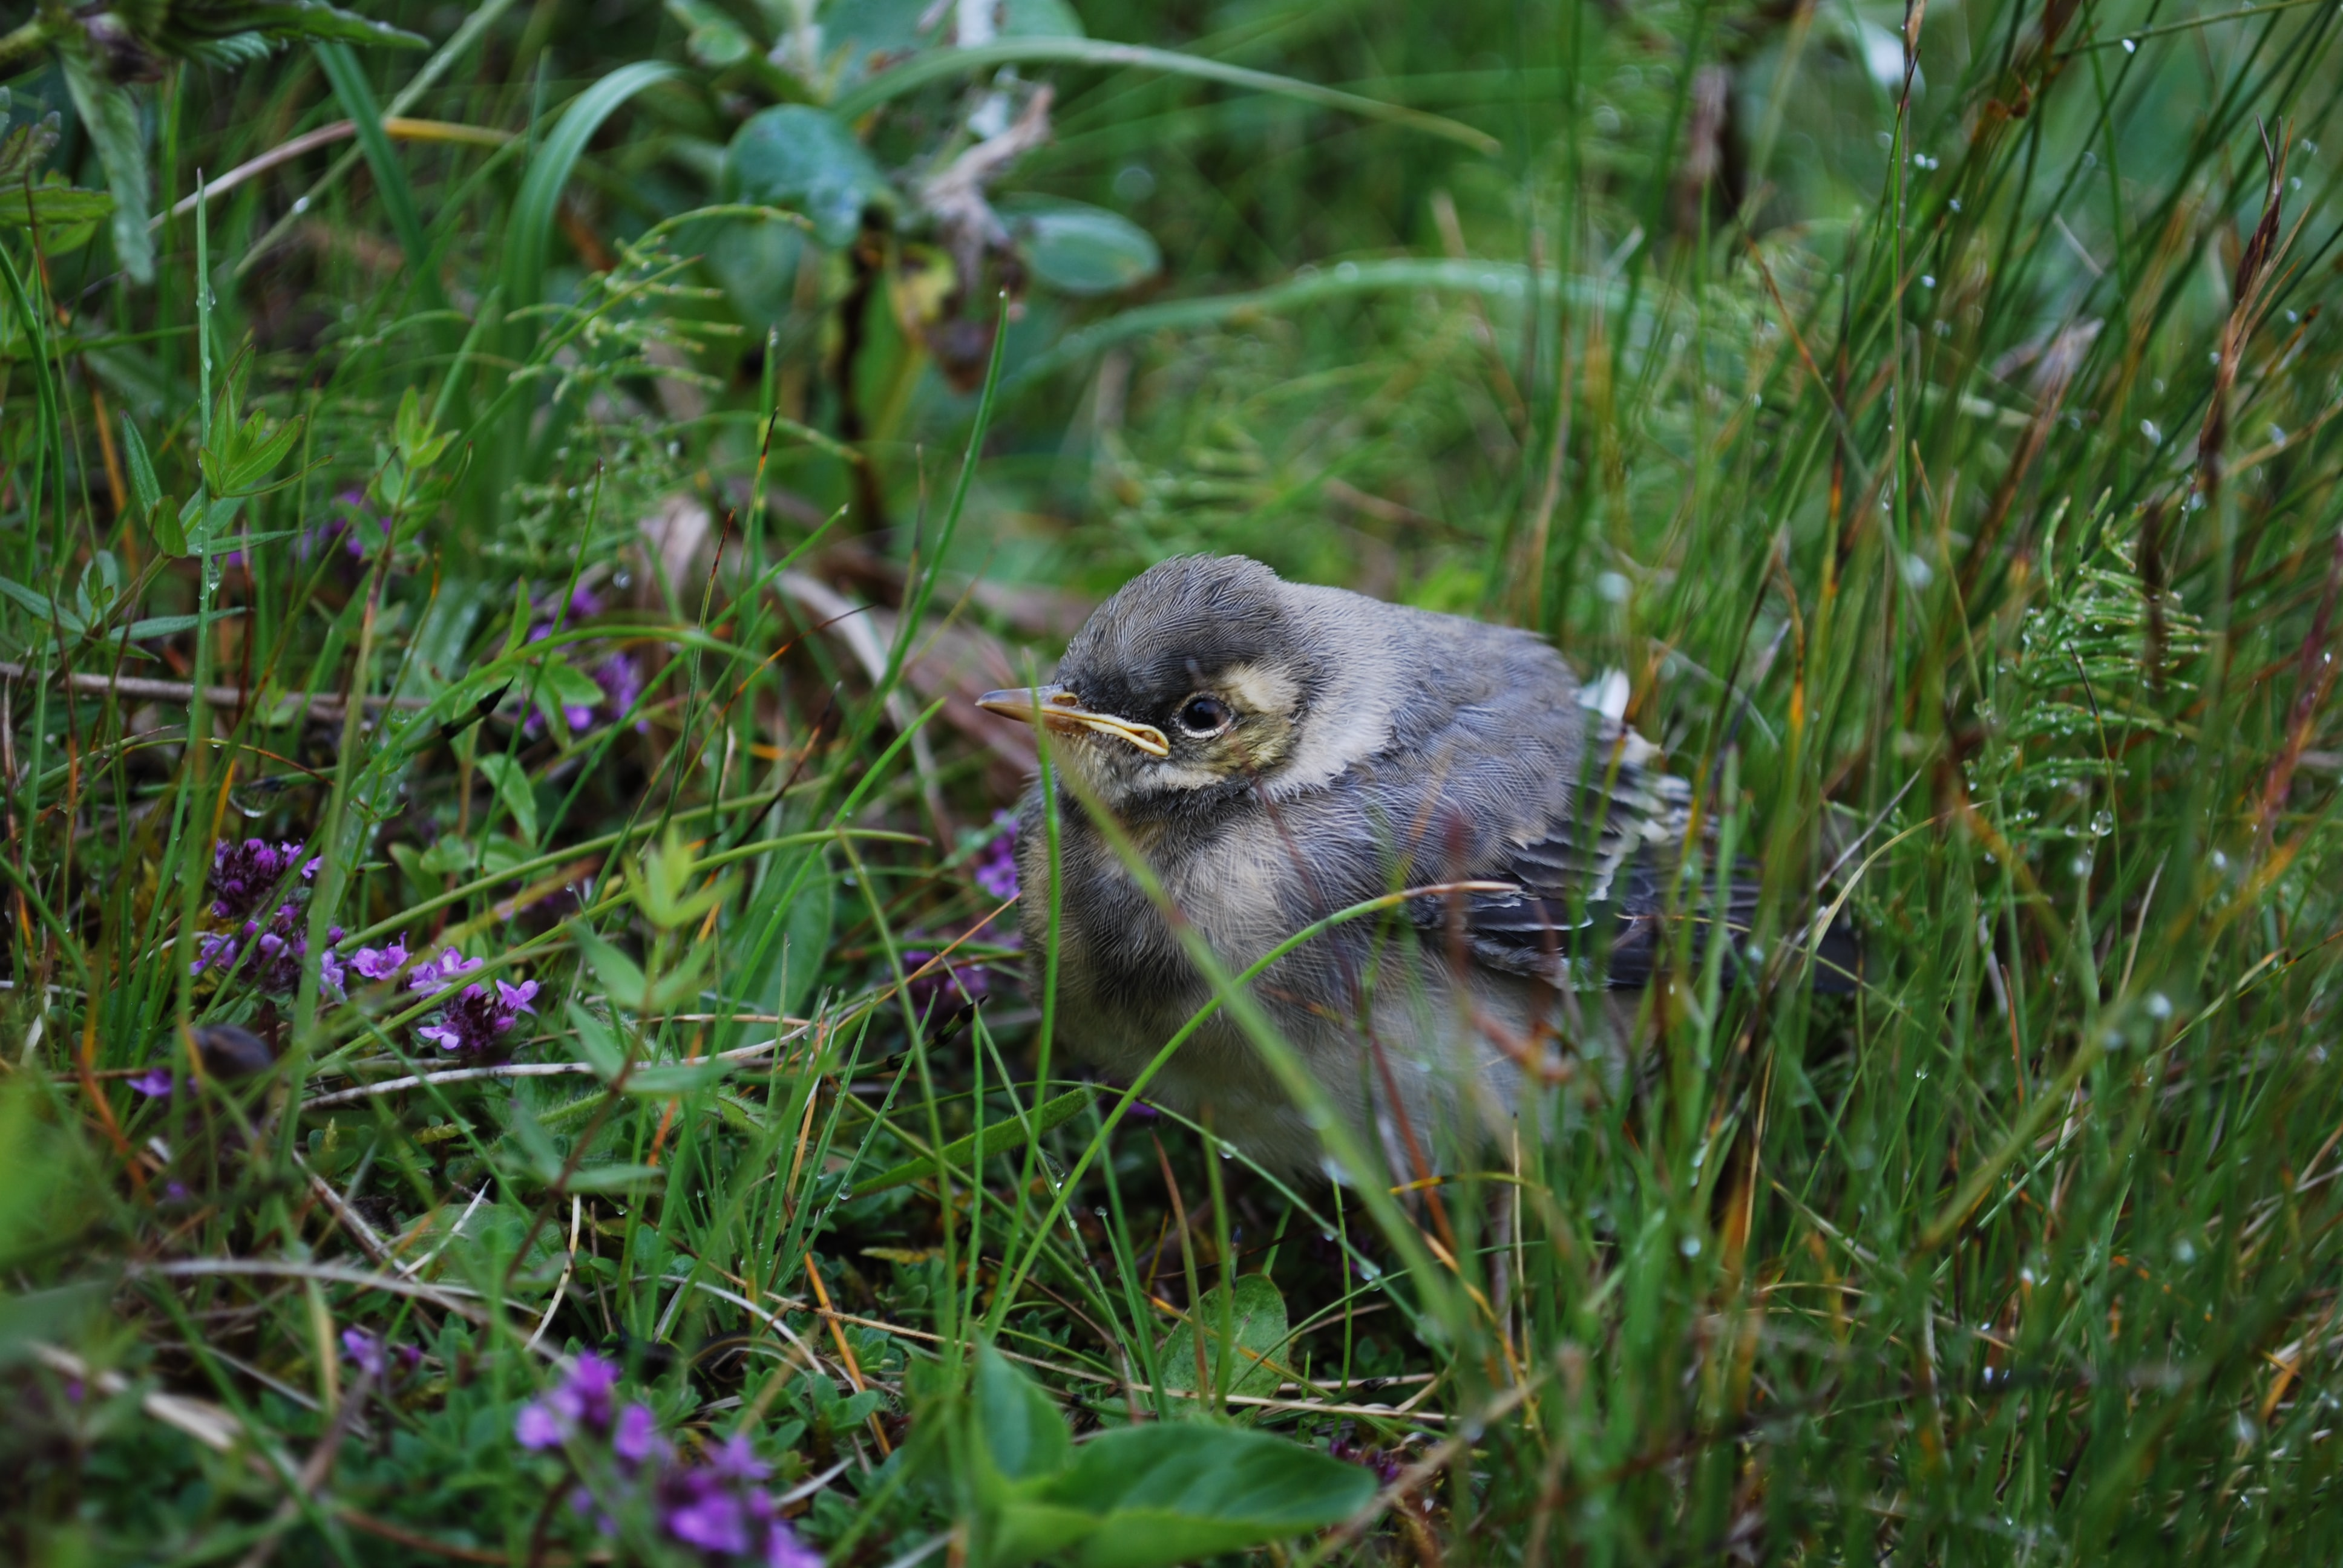 gray bird surrounded by green grass at daytime